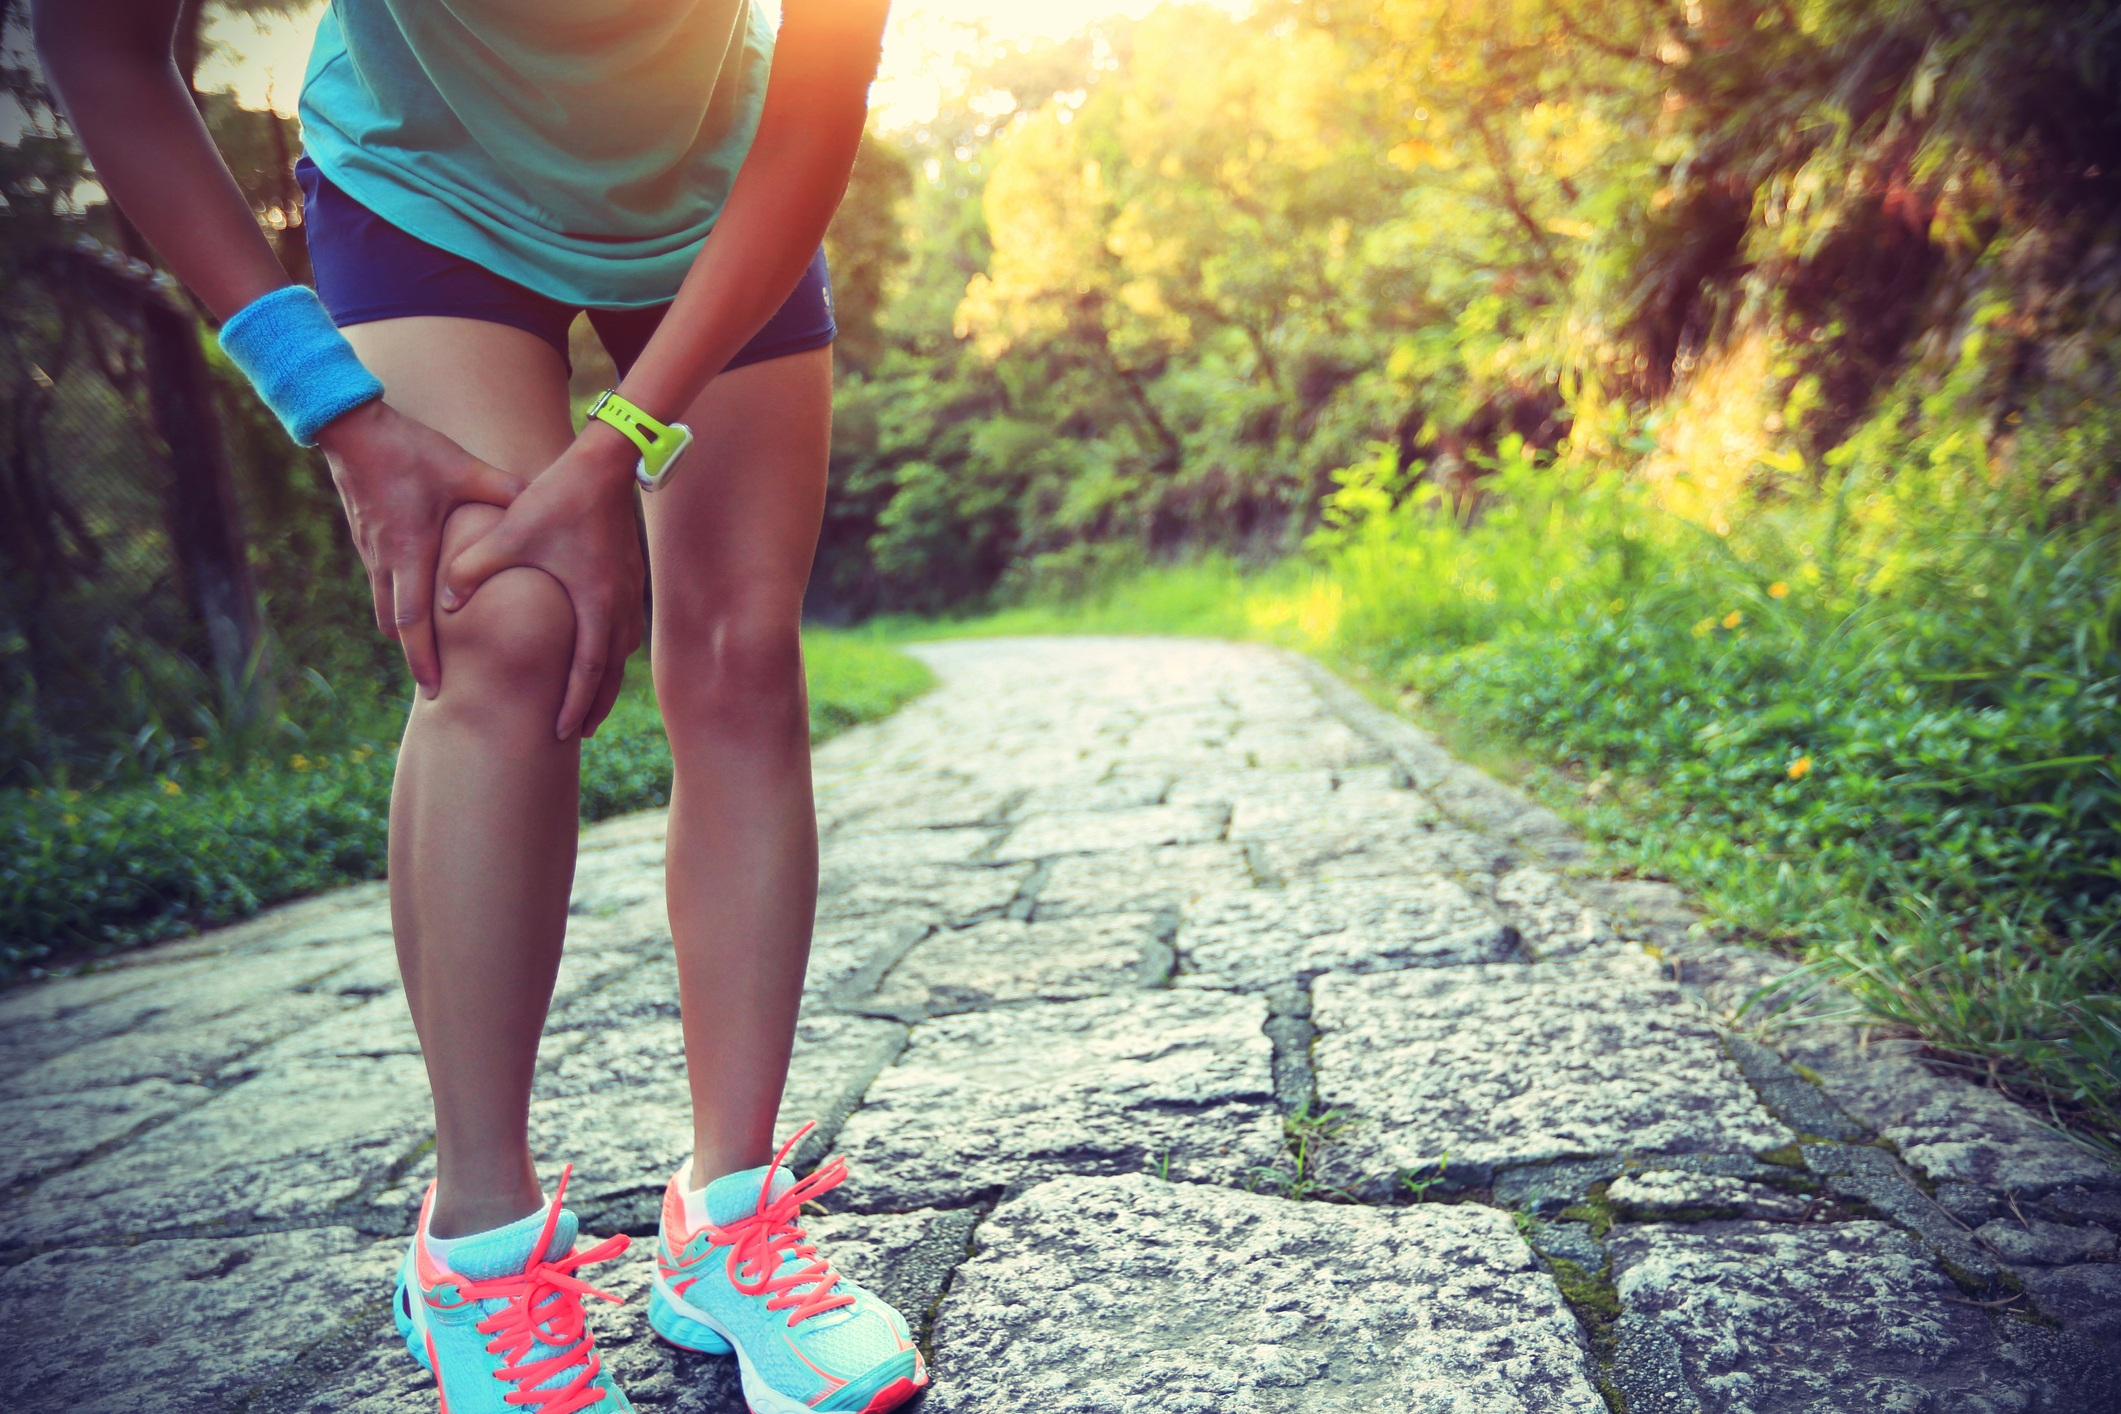 Knee pain, as well other joints, can be reduced or eliminated in days to weeks with regenerative medicine